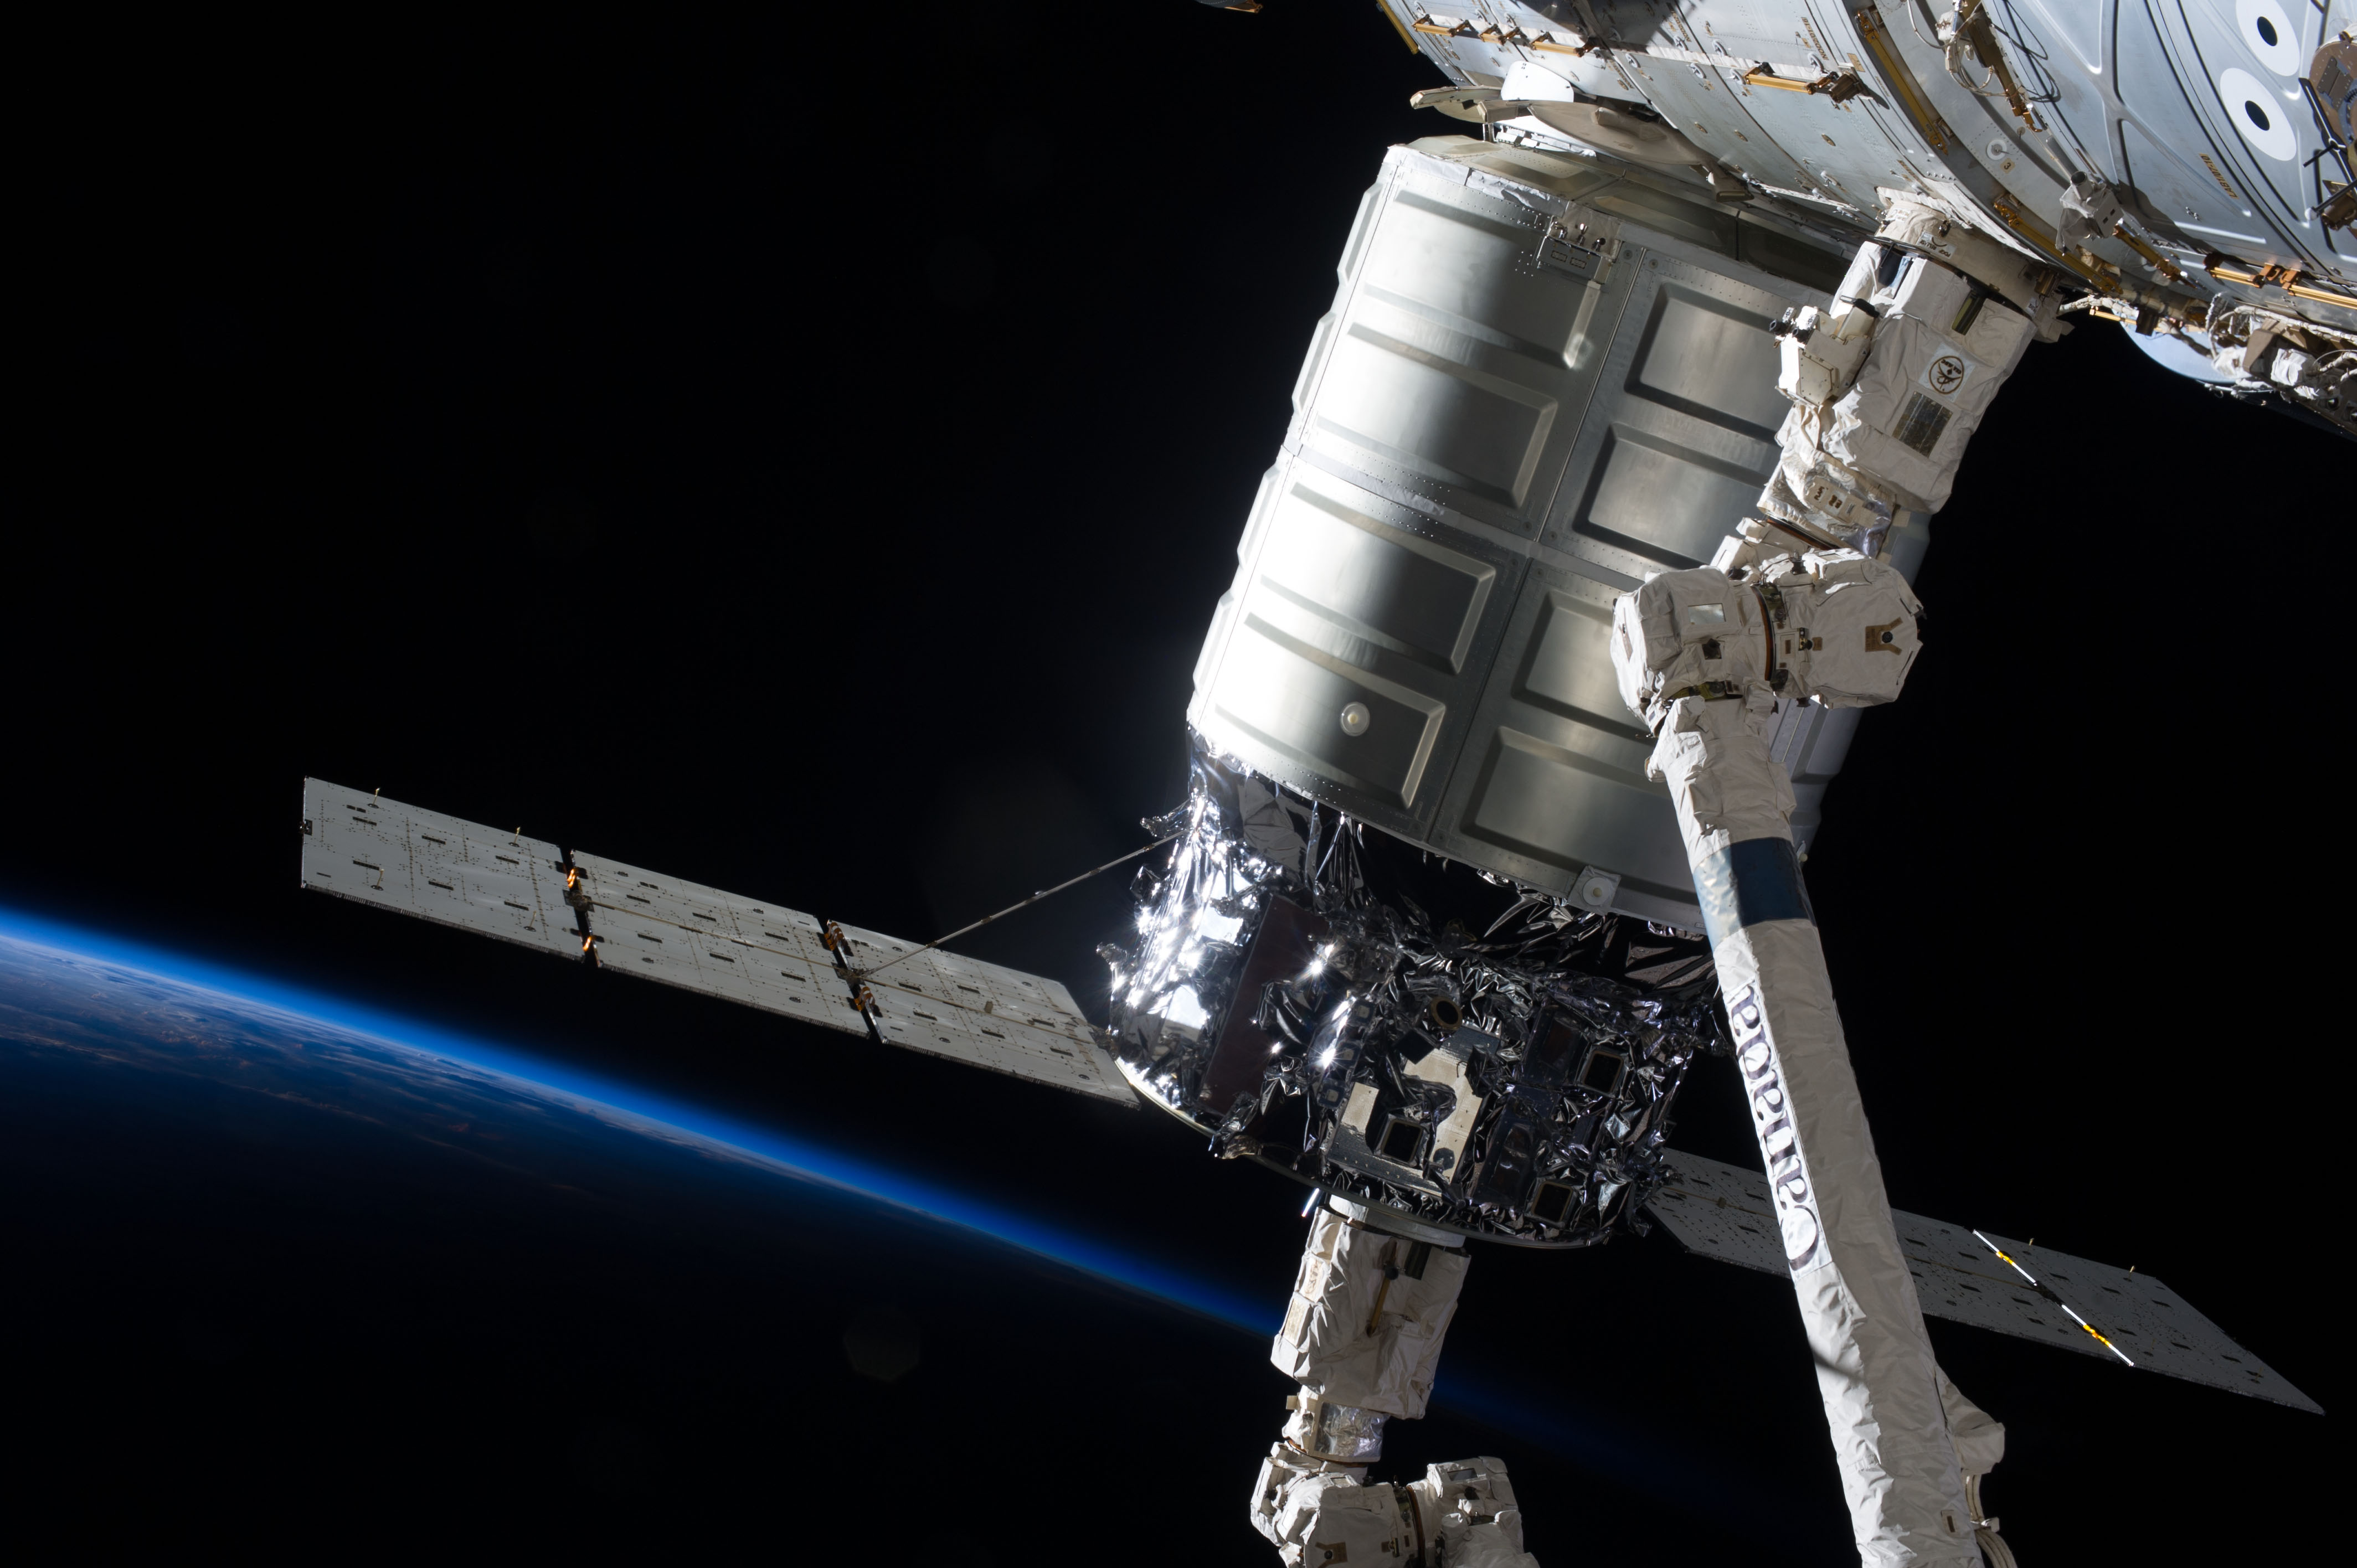 Cygnus Spacecraft at ISS and Earth